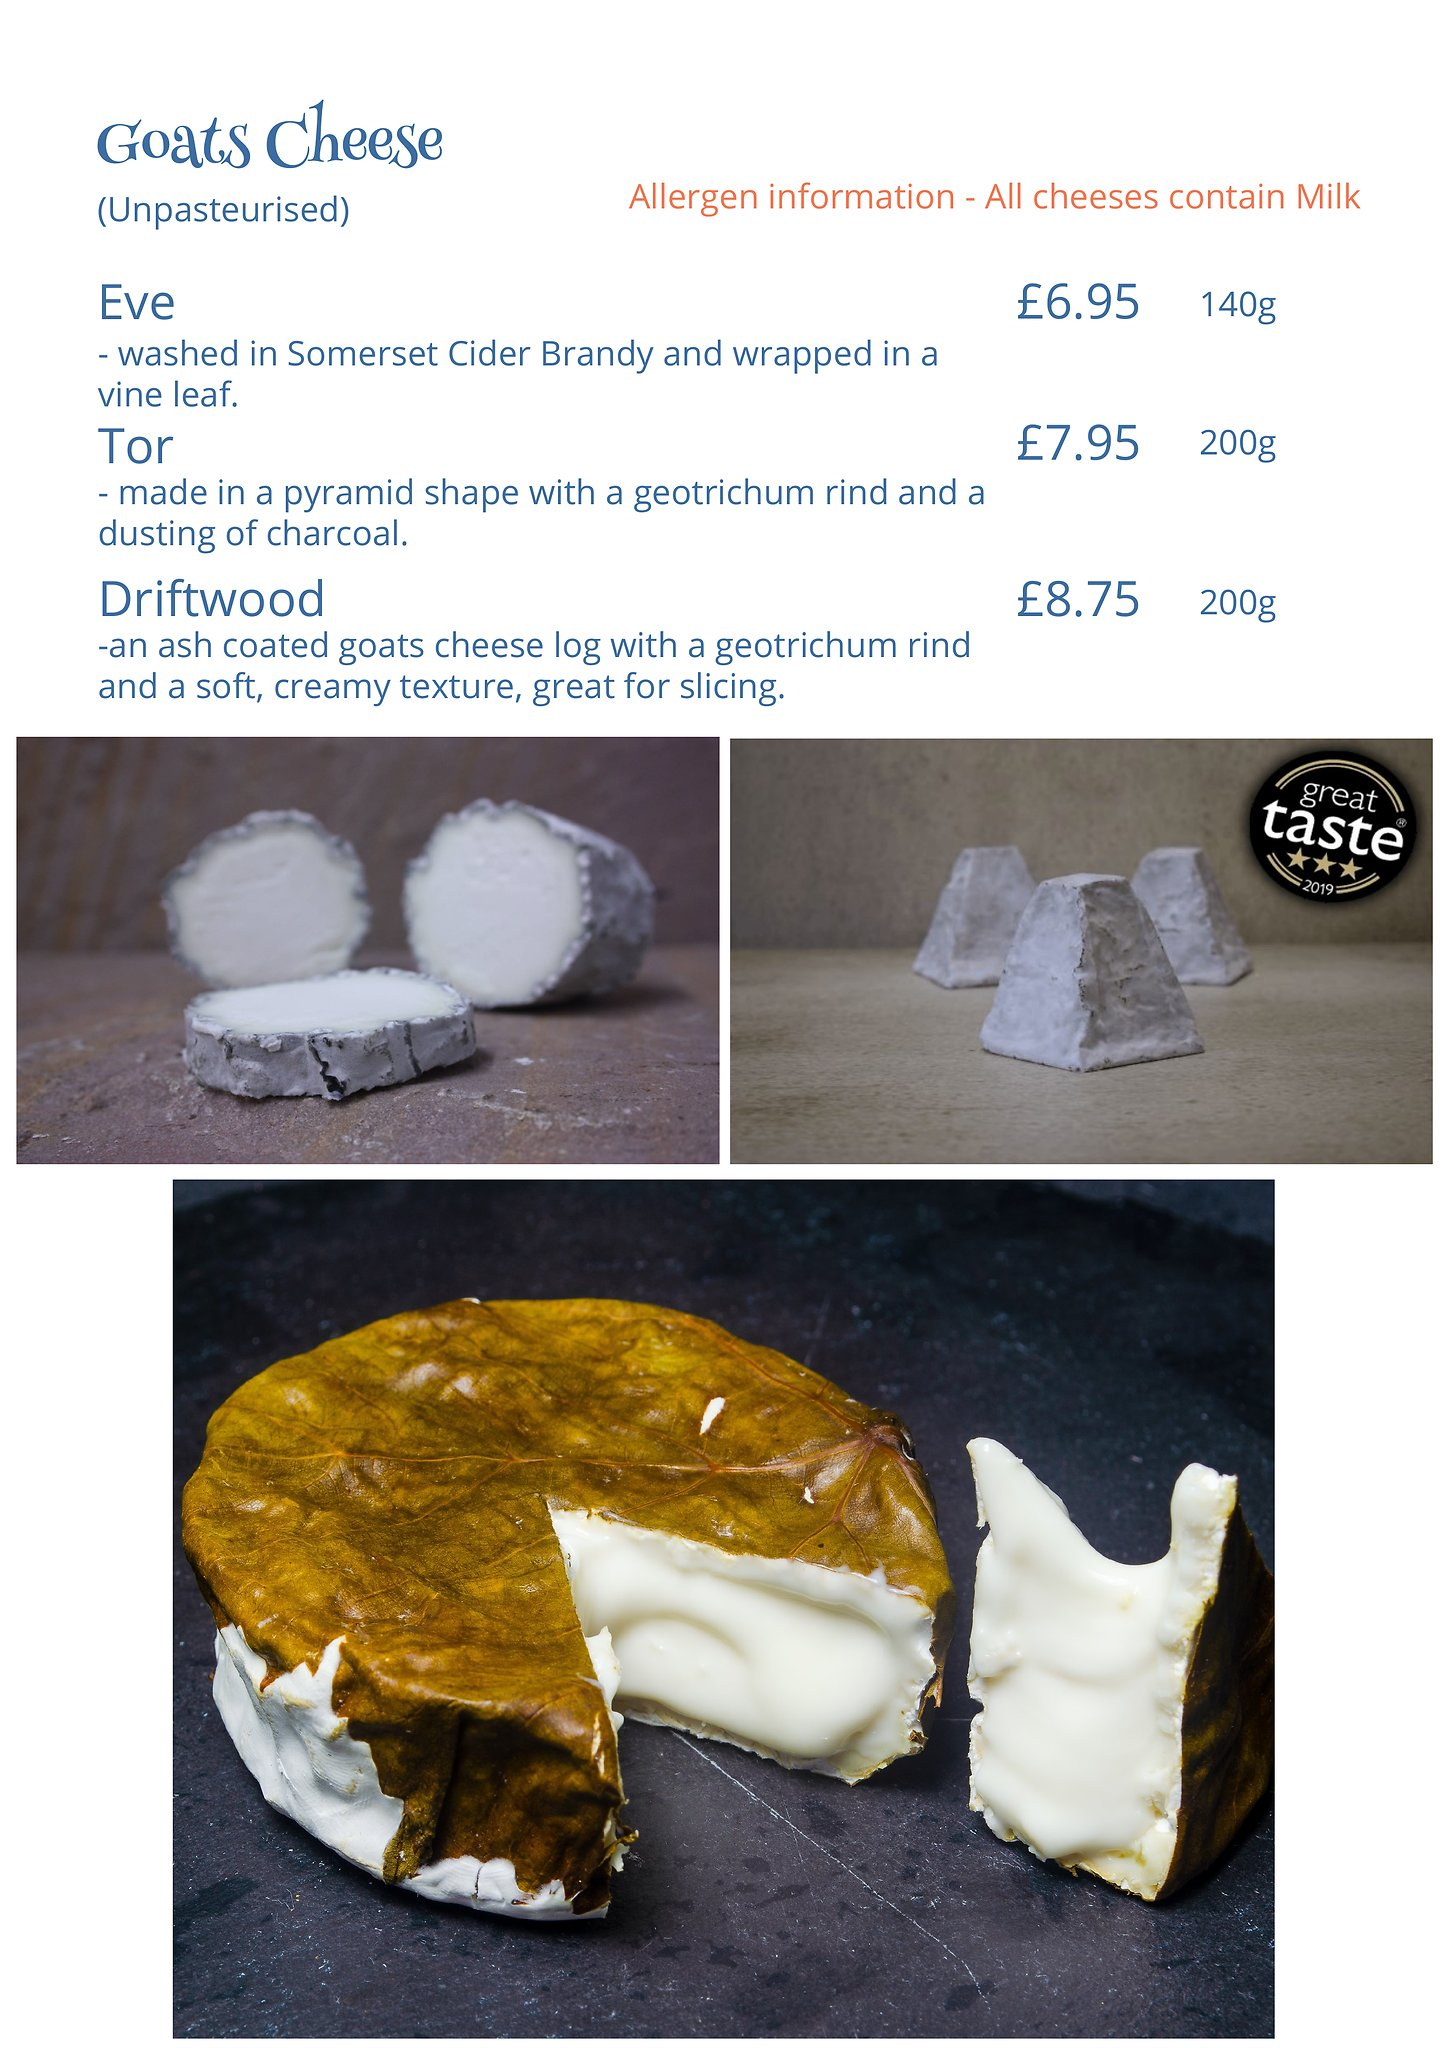 Award Winning Goats Cheese from White Lake Cheese in Somerset